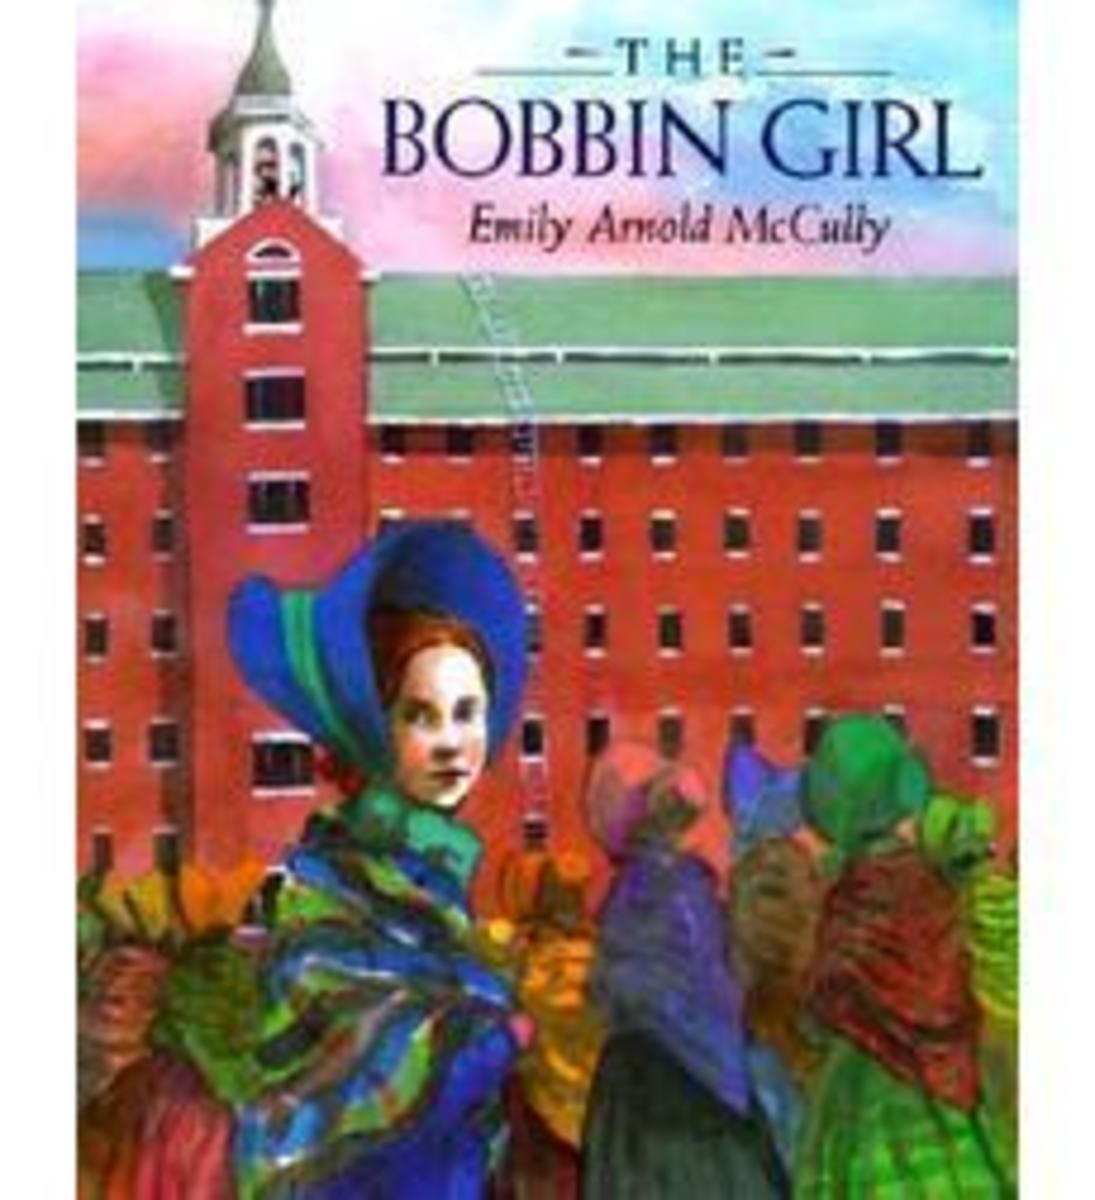 The Bobbin Girl by Emily Arnold McCully (This image is from scholastic.com.)